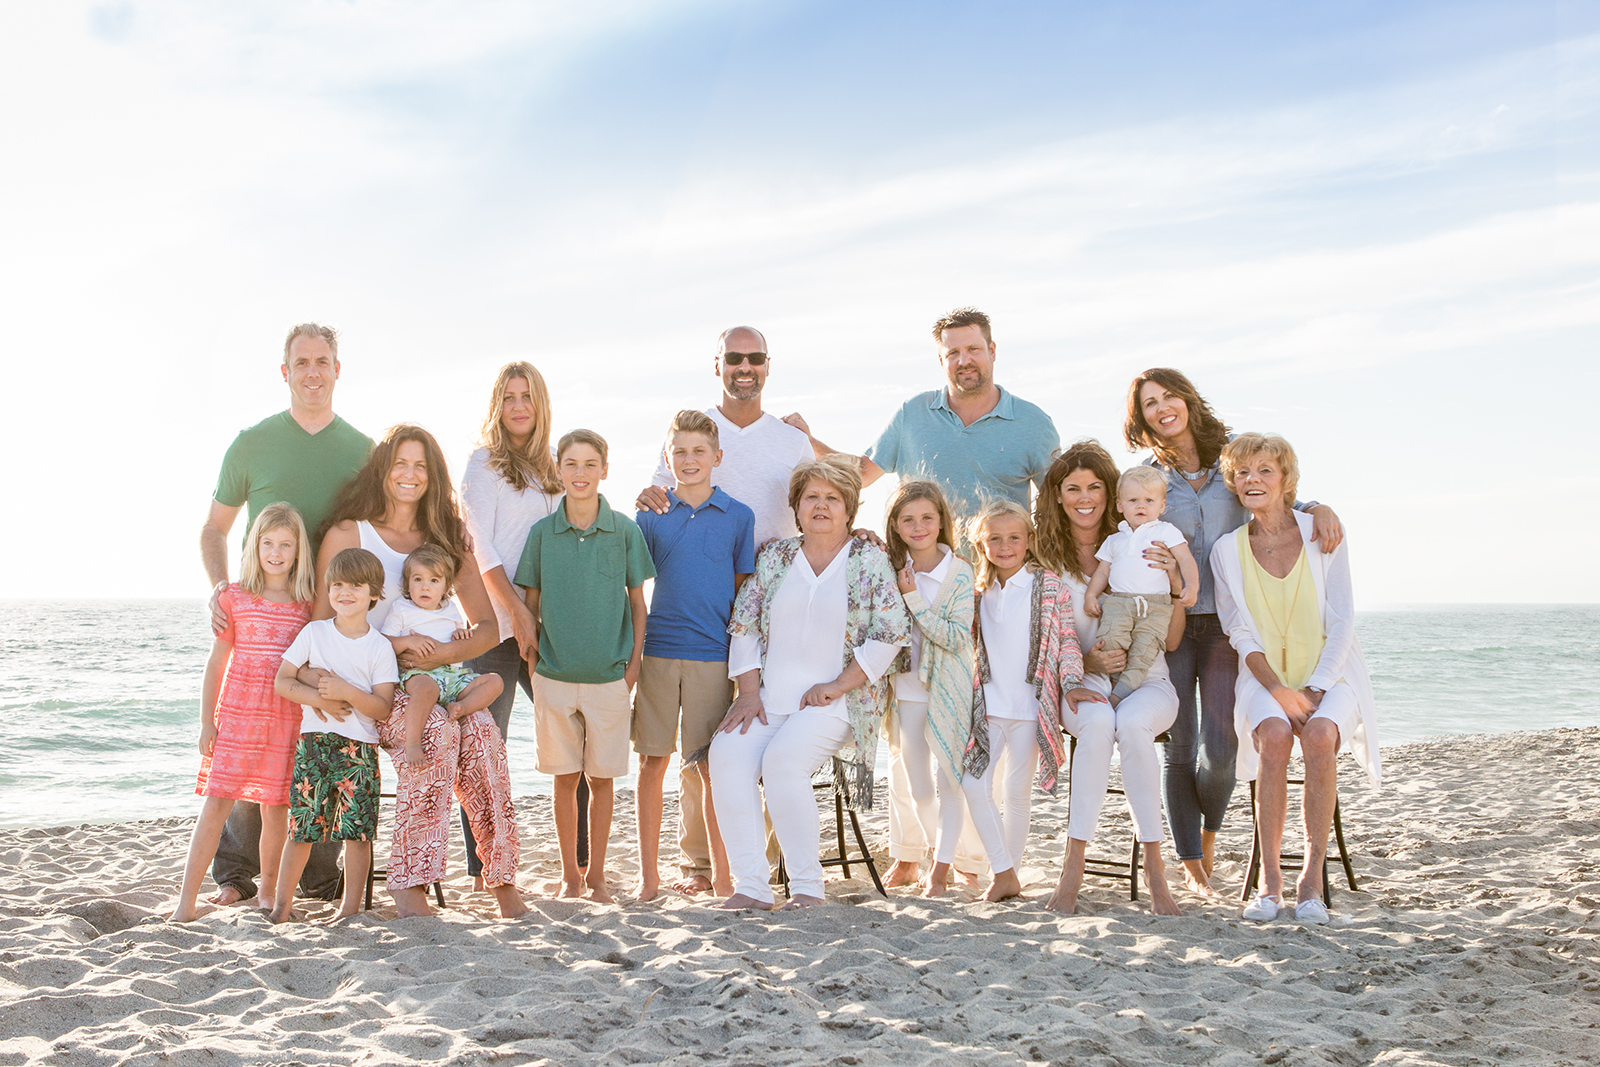 photos on the beach, multiple generations, large group